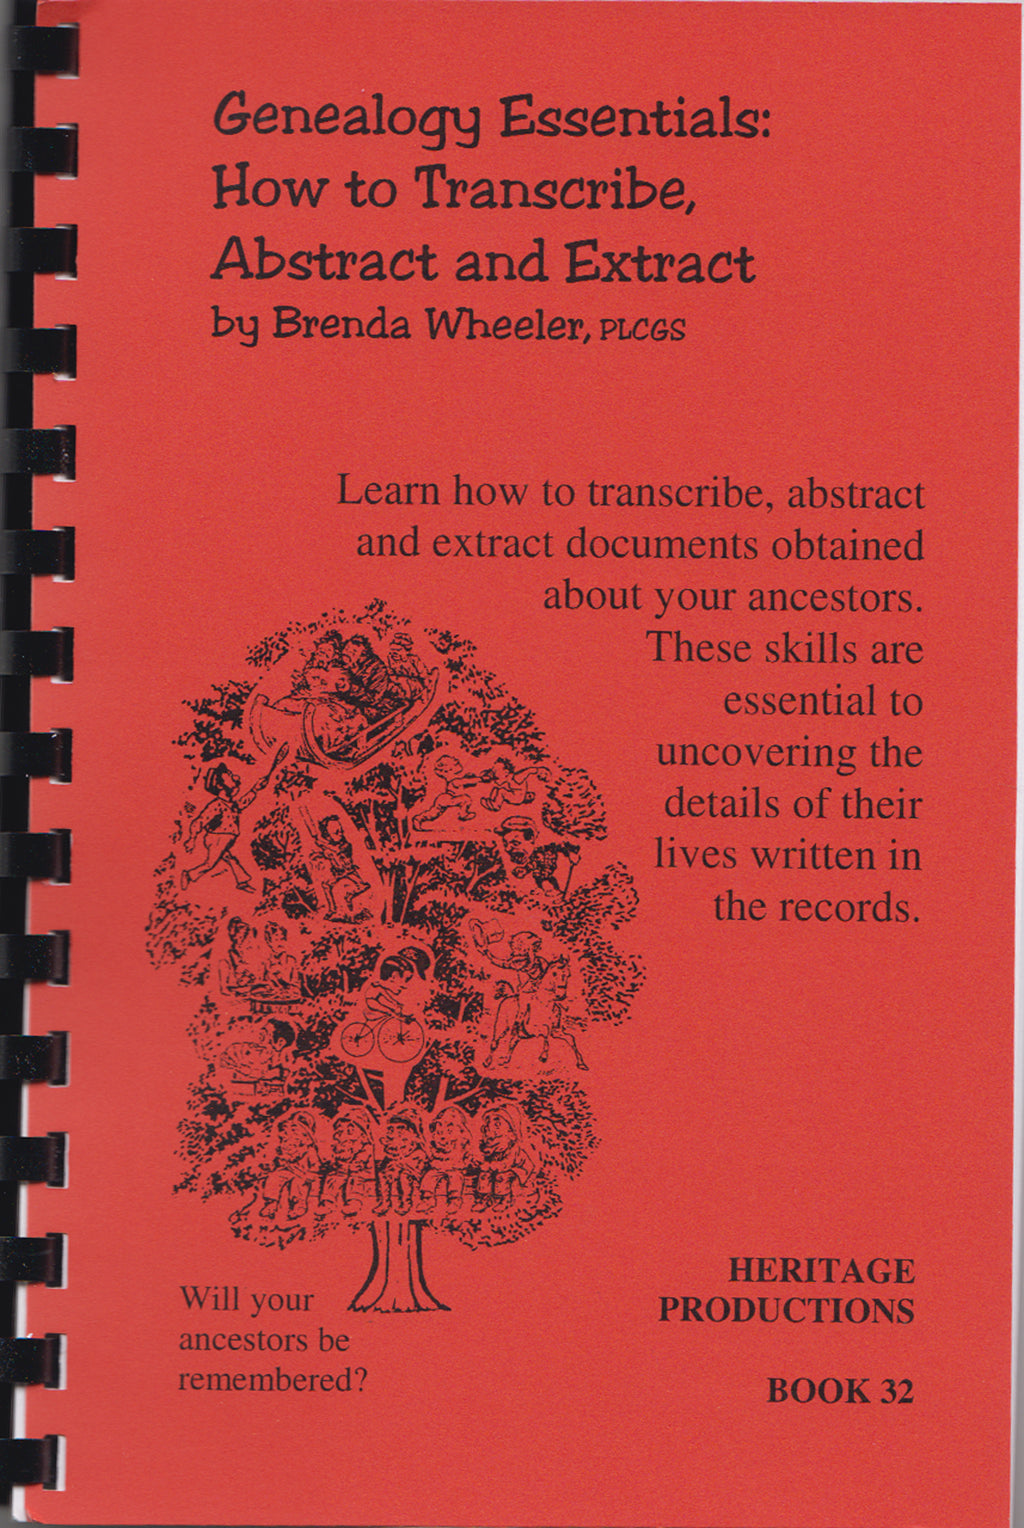 Genealogy Essentials: How to Transcribe, Abstract and Extract